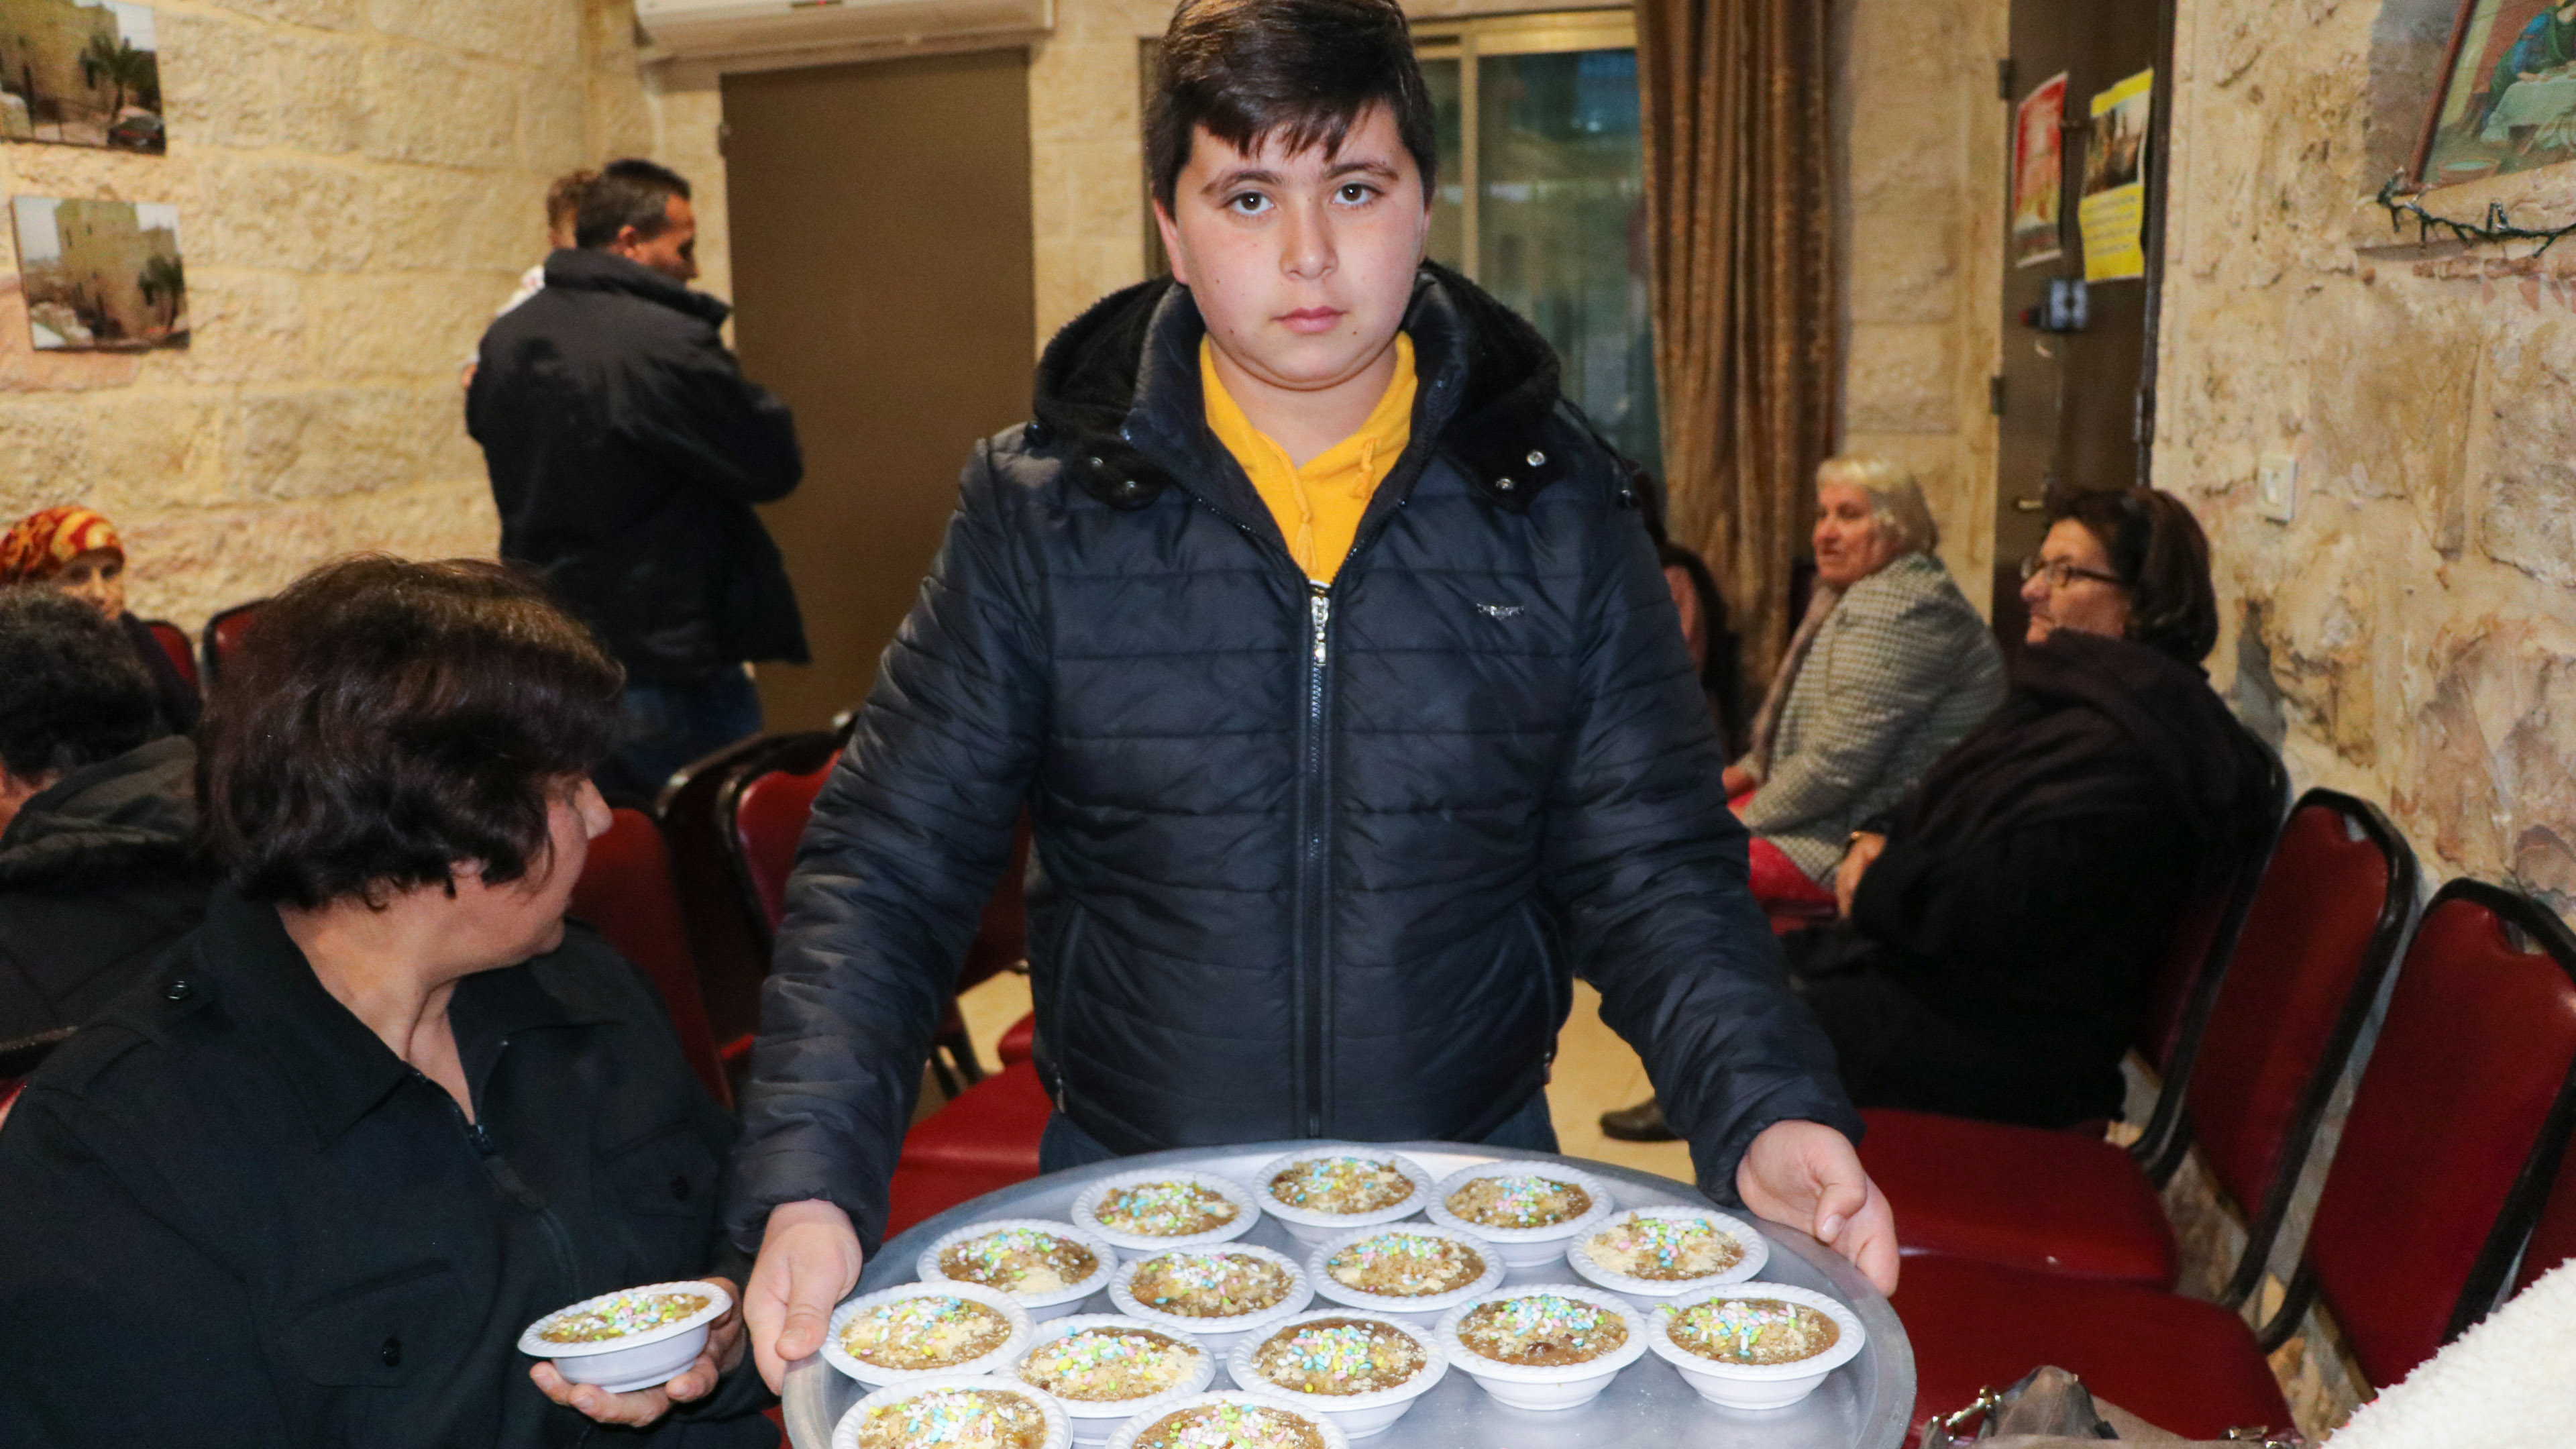 A local boy serves burburah, the traditional food of St. Barbara's Day - by Stephanie Saldaña.